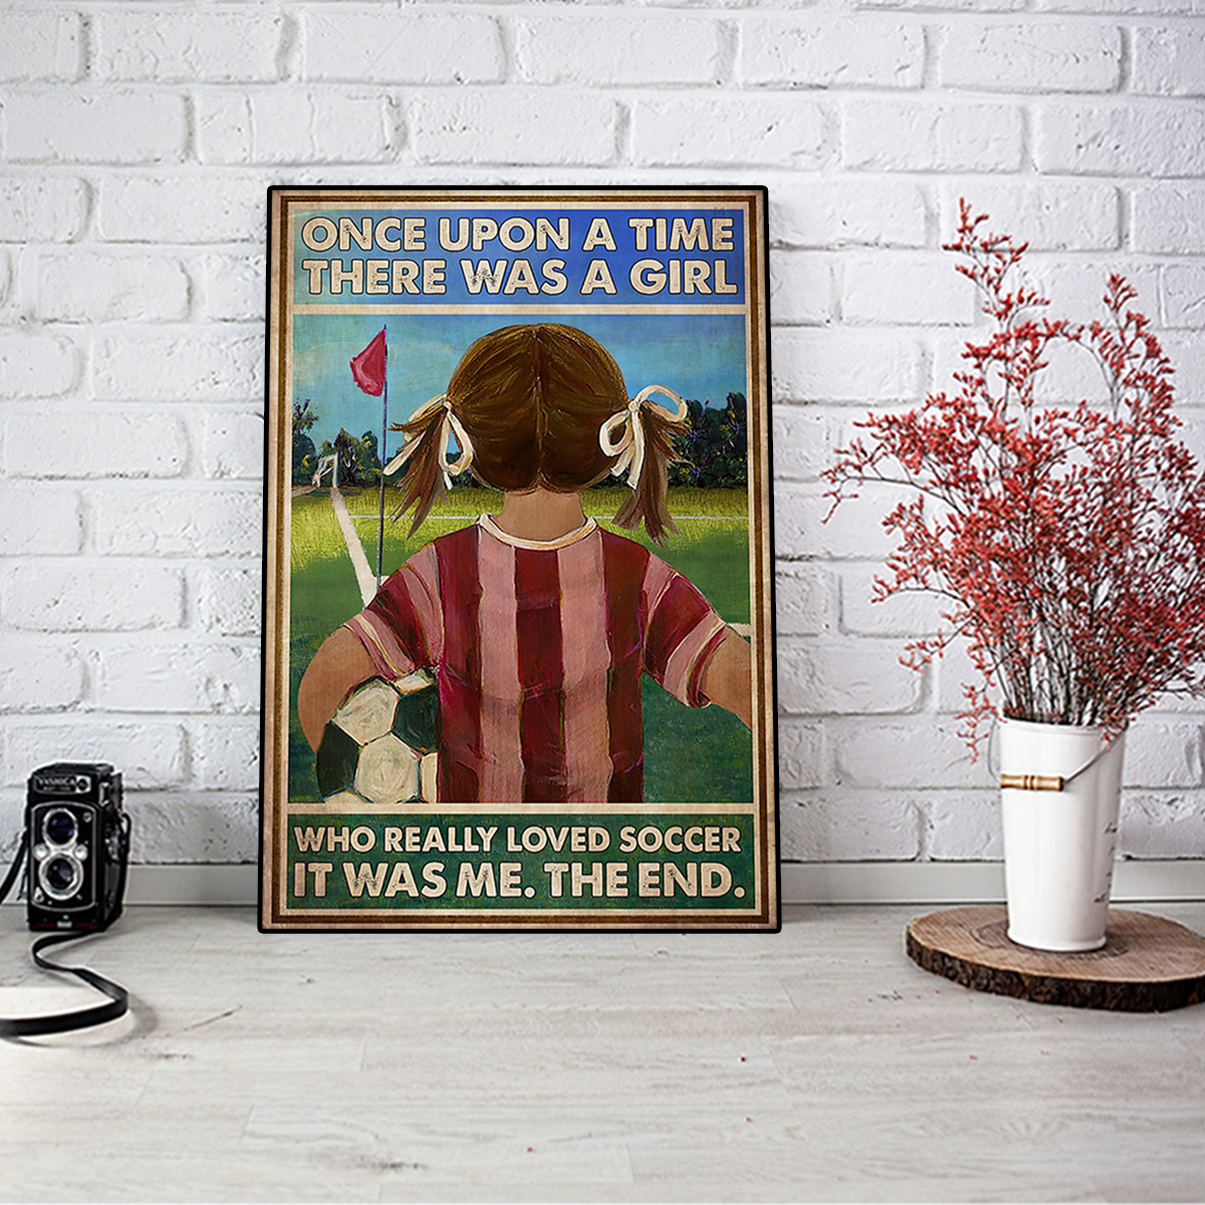 Once upon a time there was a girl who really loved soccer poster A3